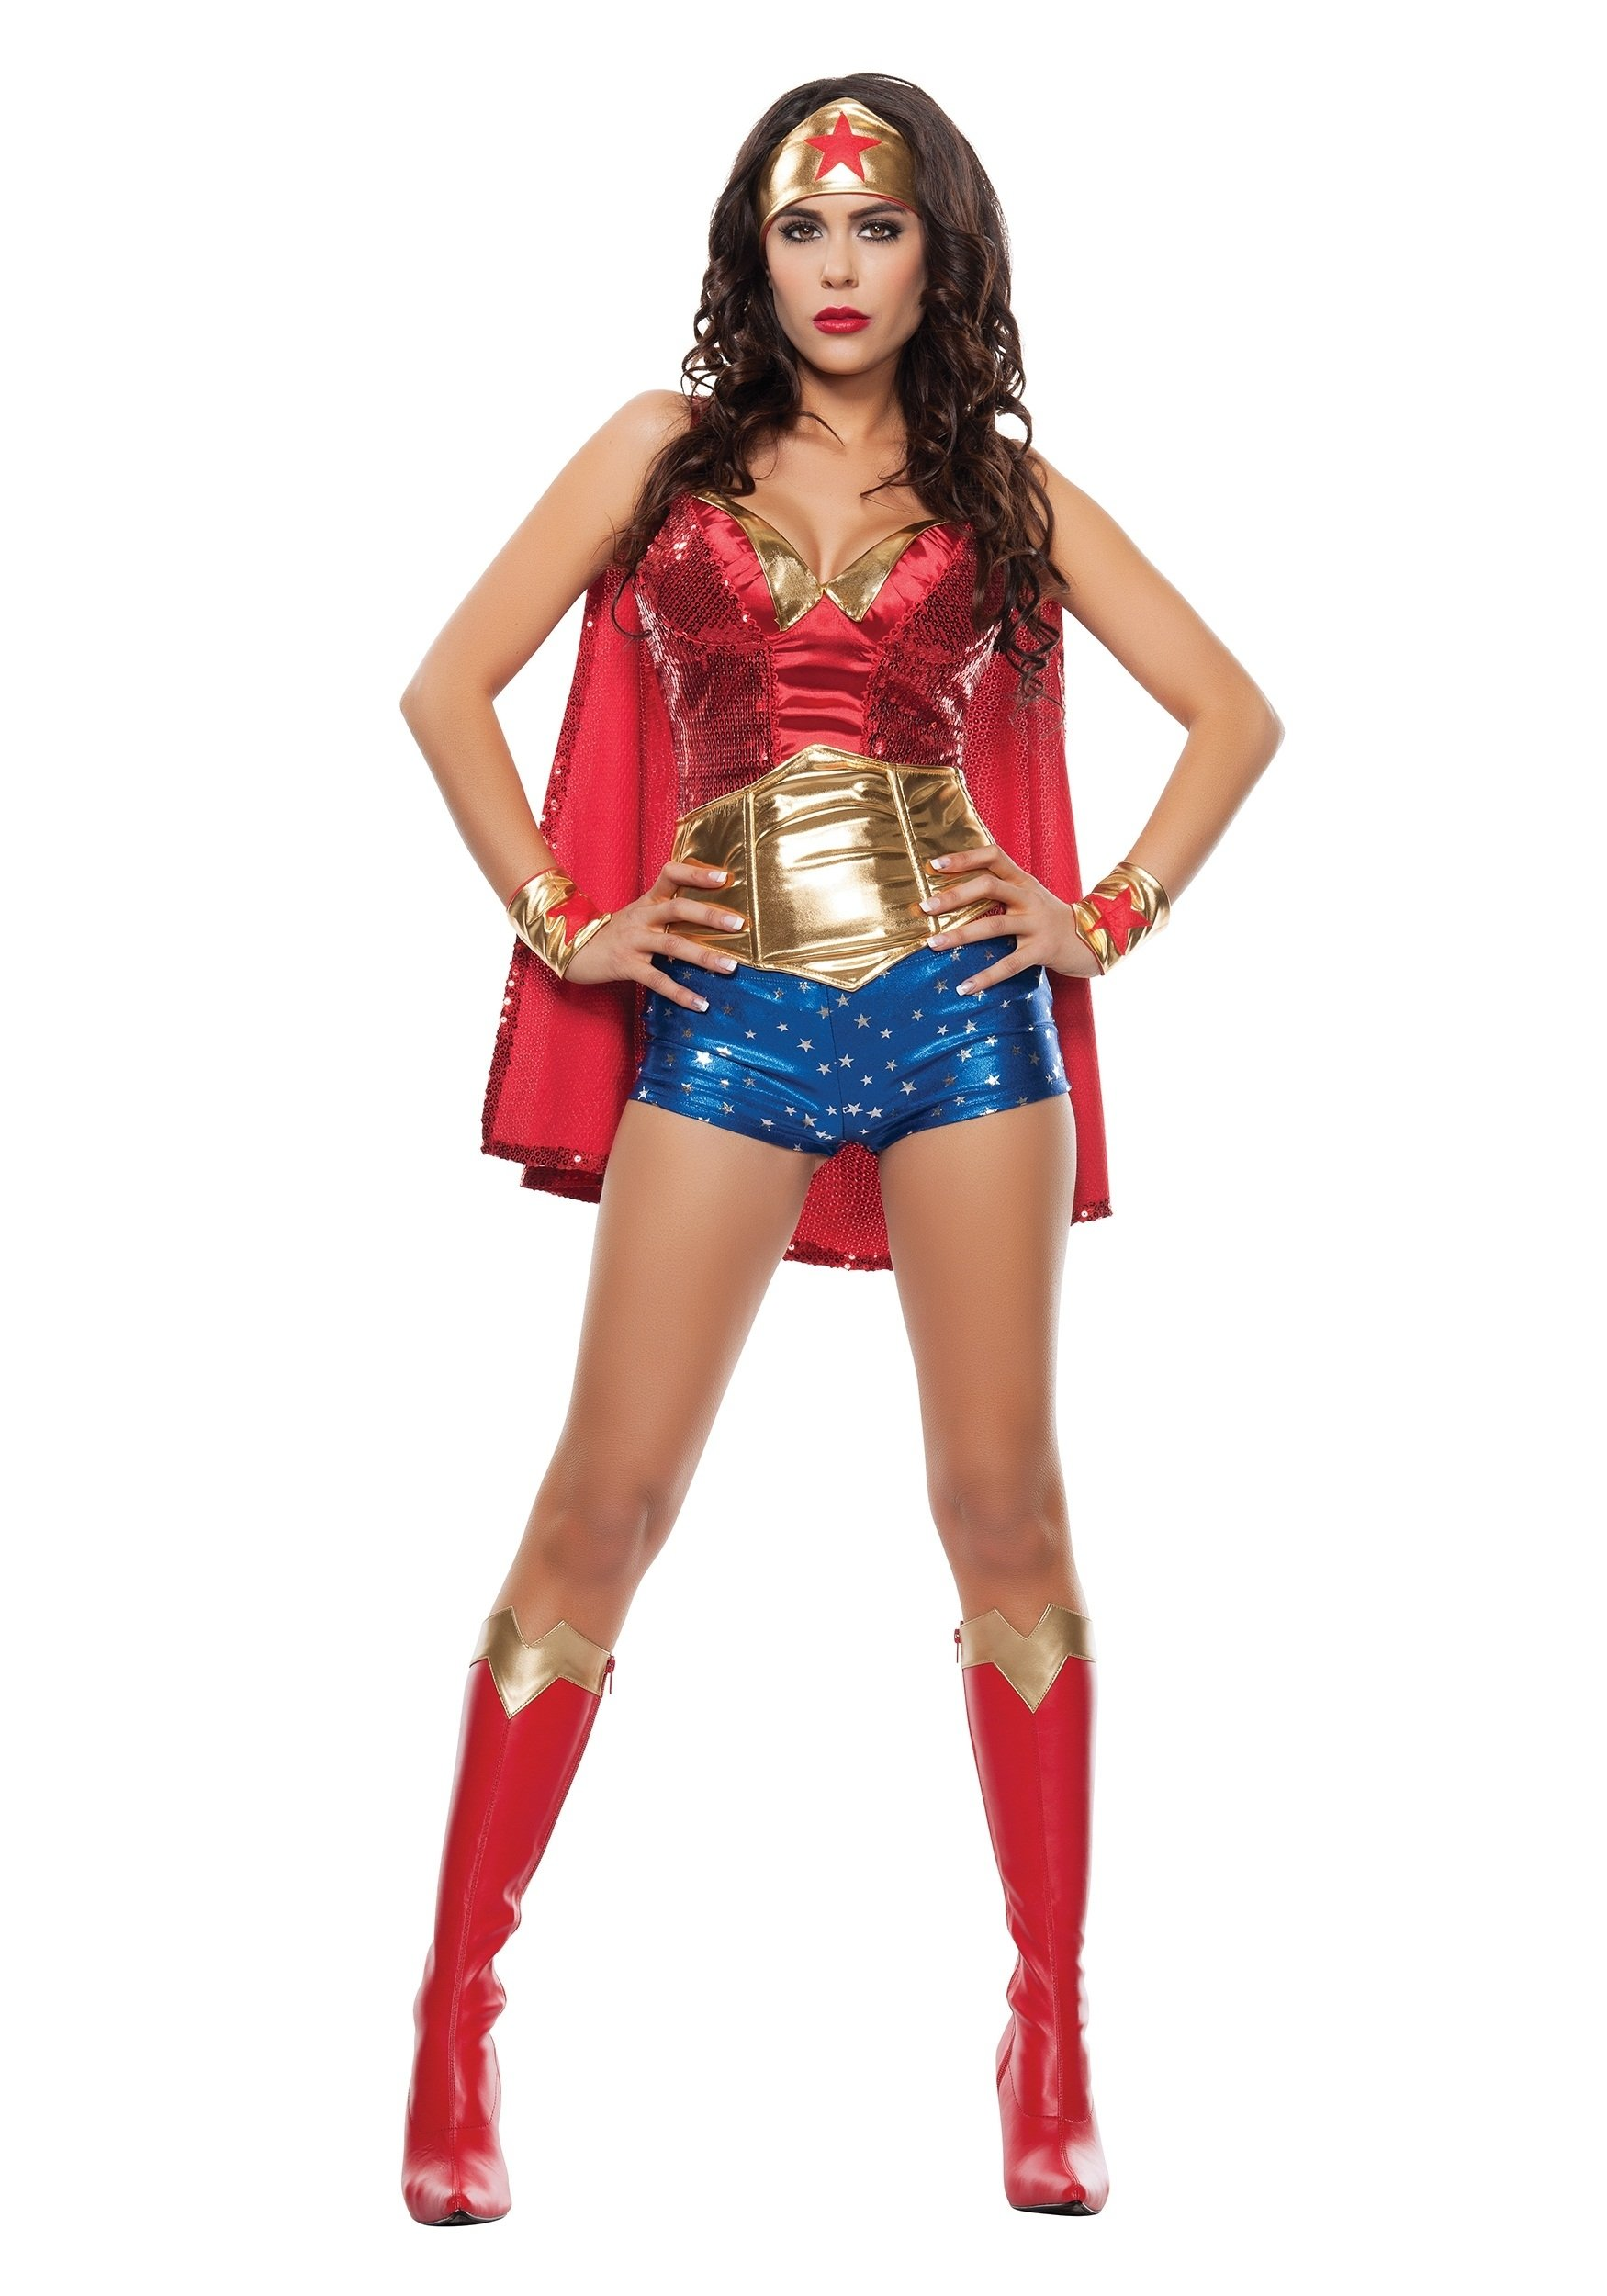 10 Wonderful Cheap Sexy Halloween Costume Ideas womens wonder lady costume 2020